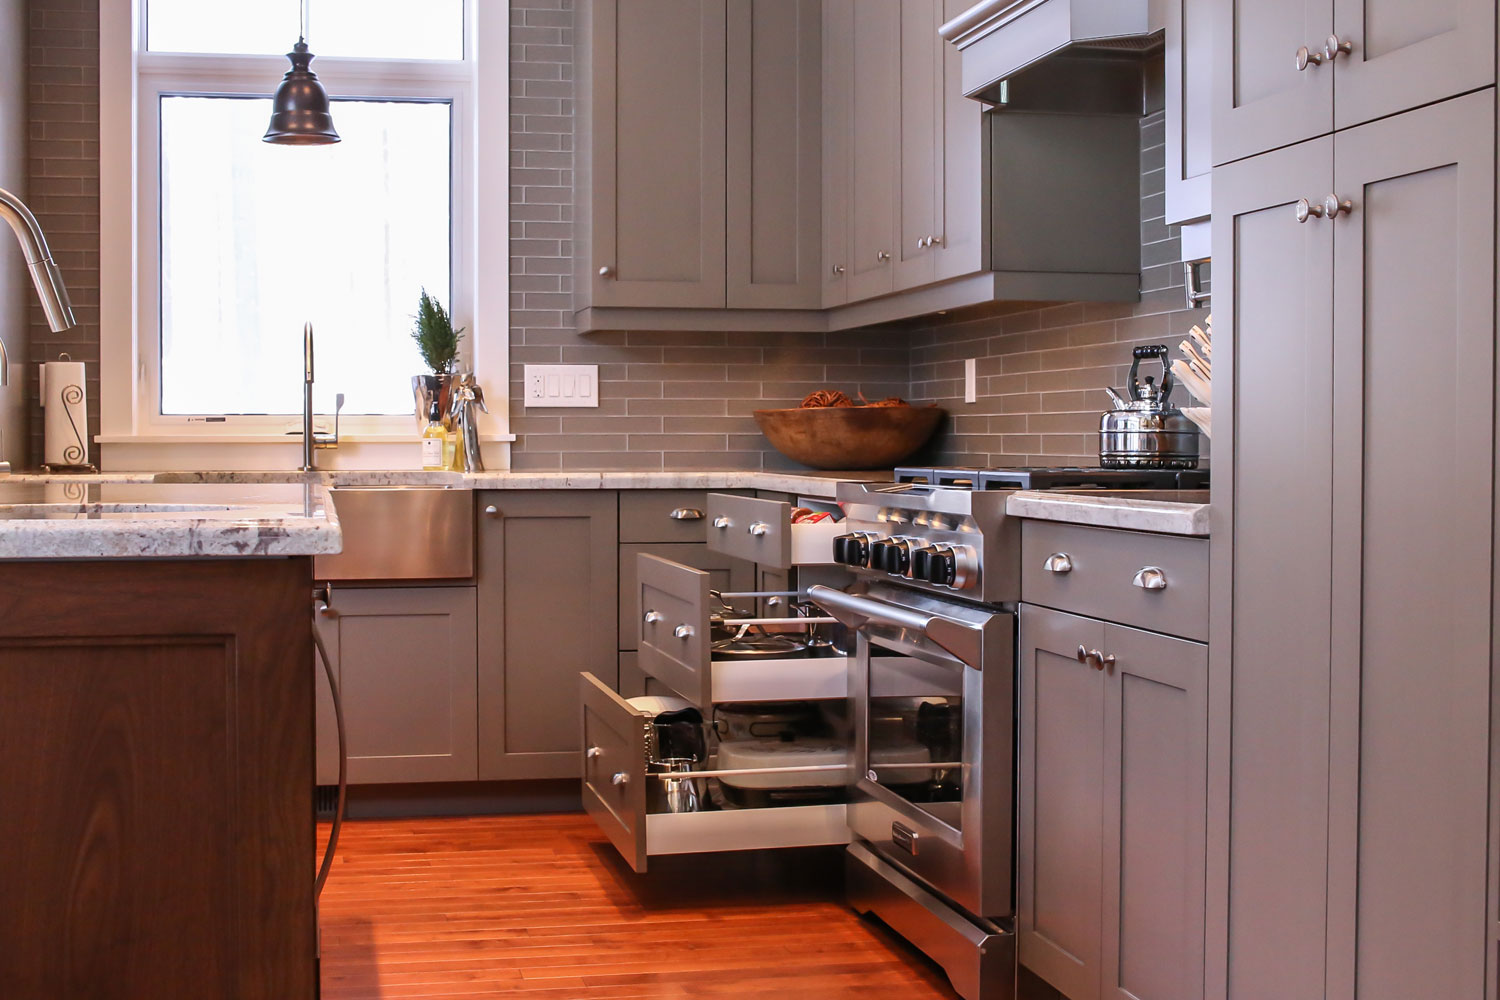 kitchen design with convenient pull out pots and pans drawers